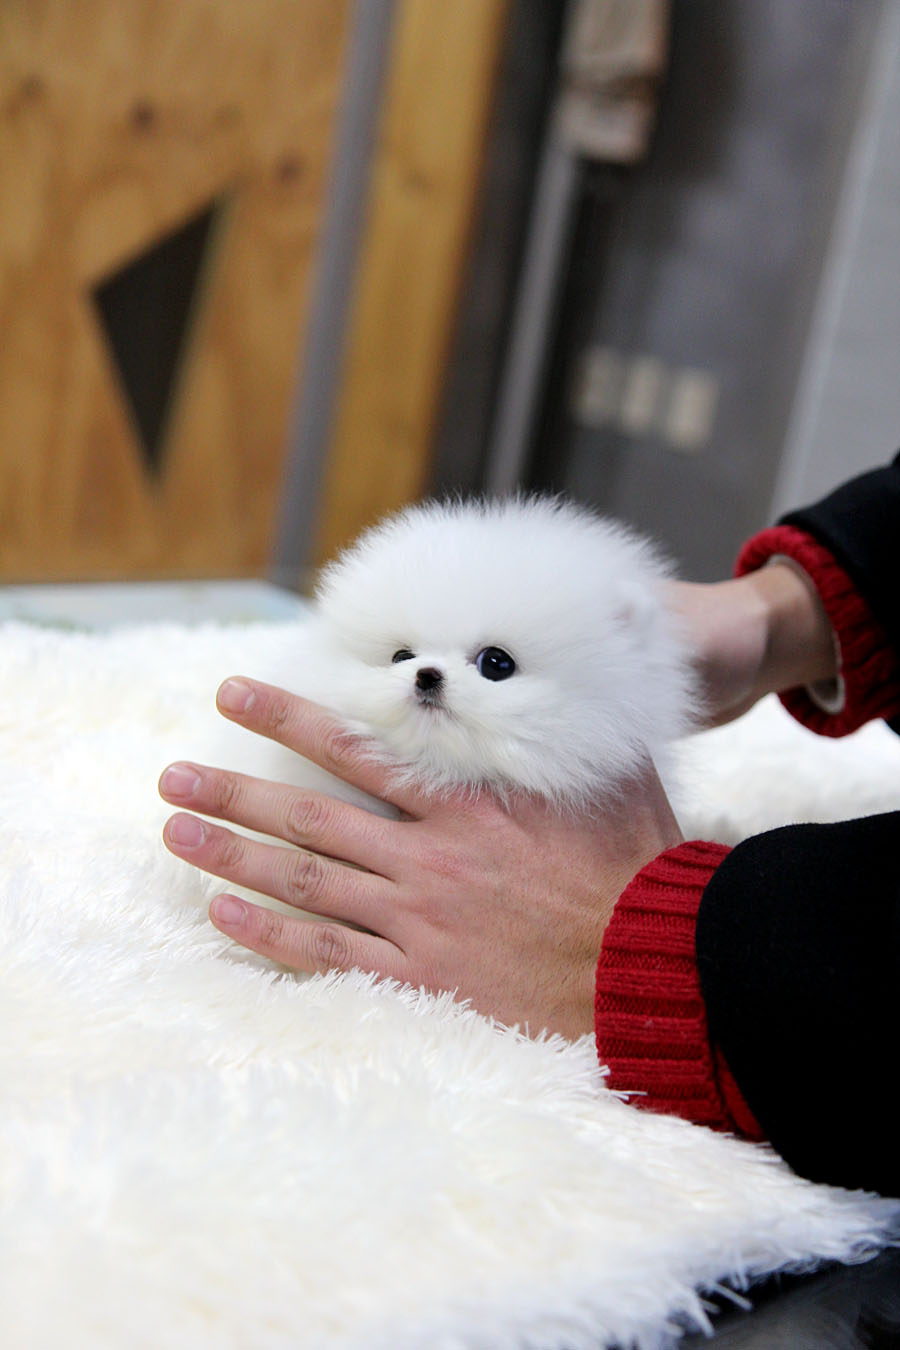 TEACUP PUPPY: Teacup puppy for sale White teacup ...